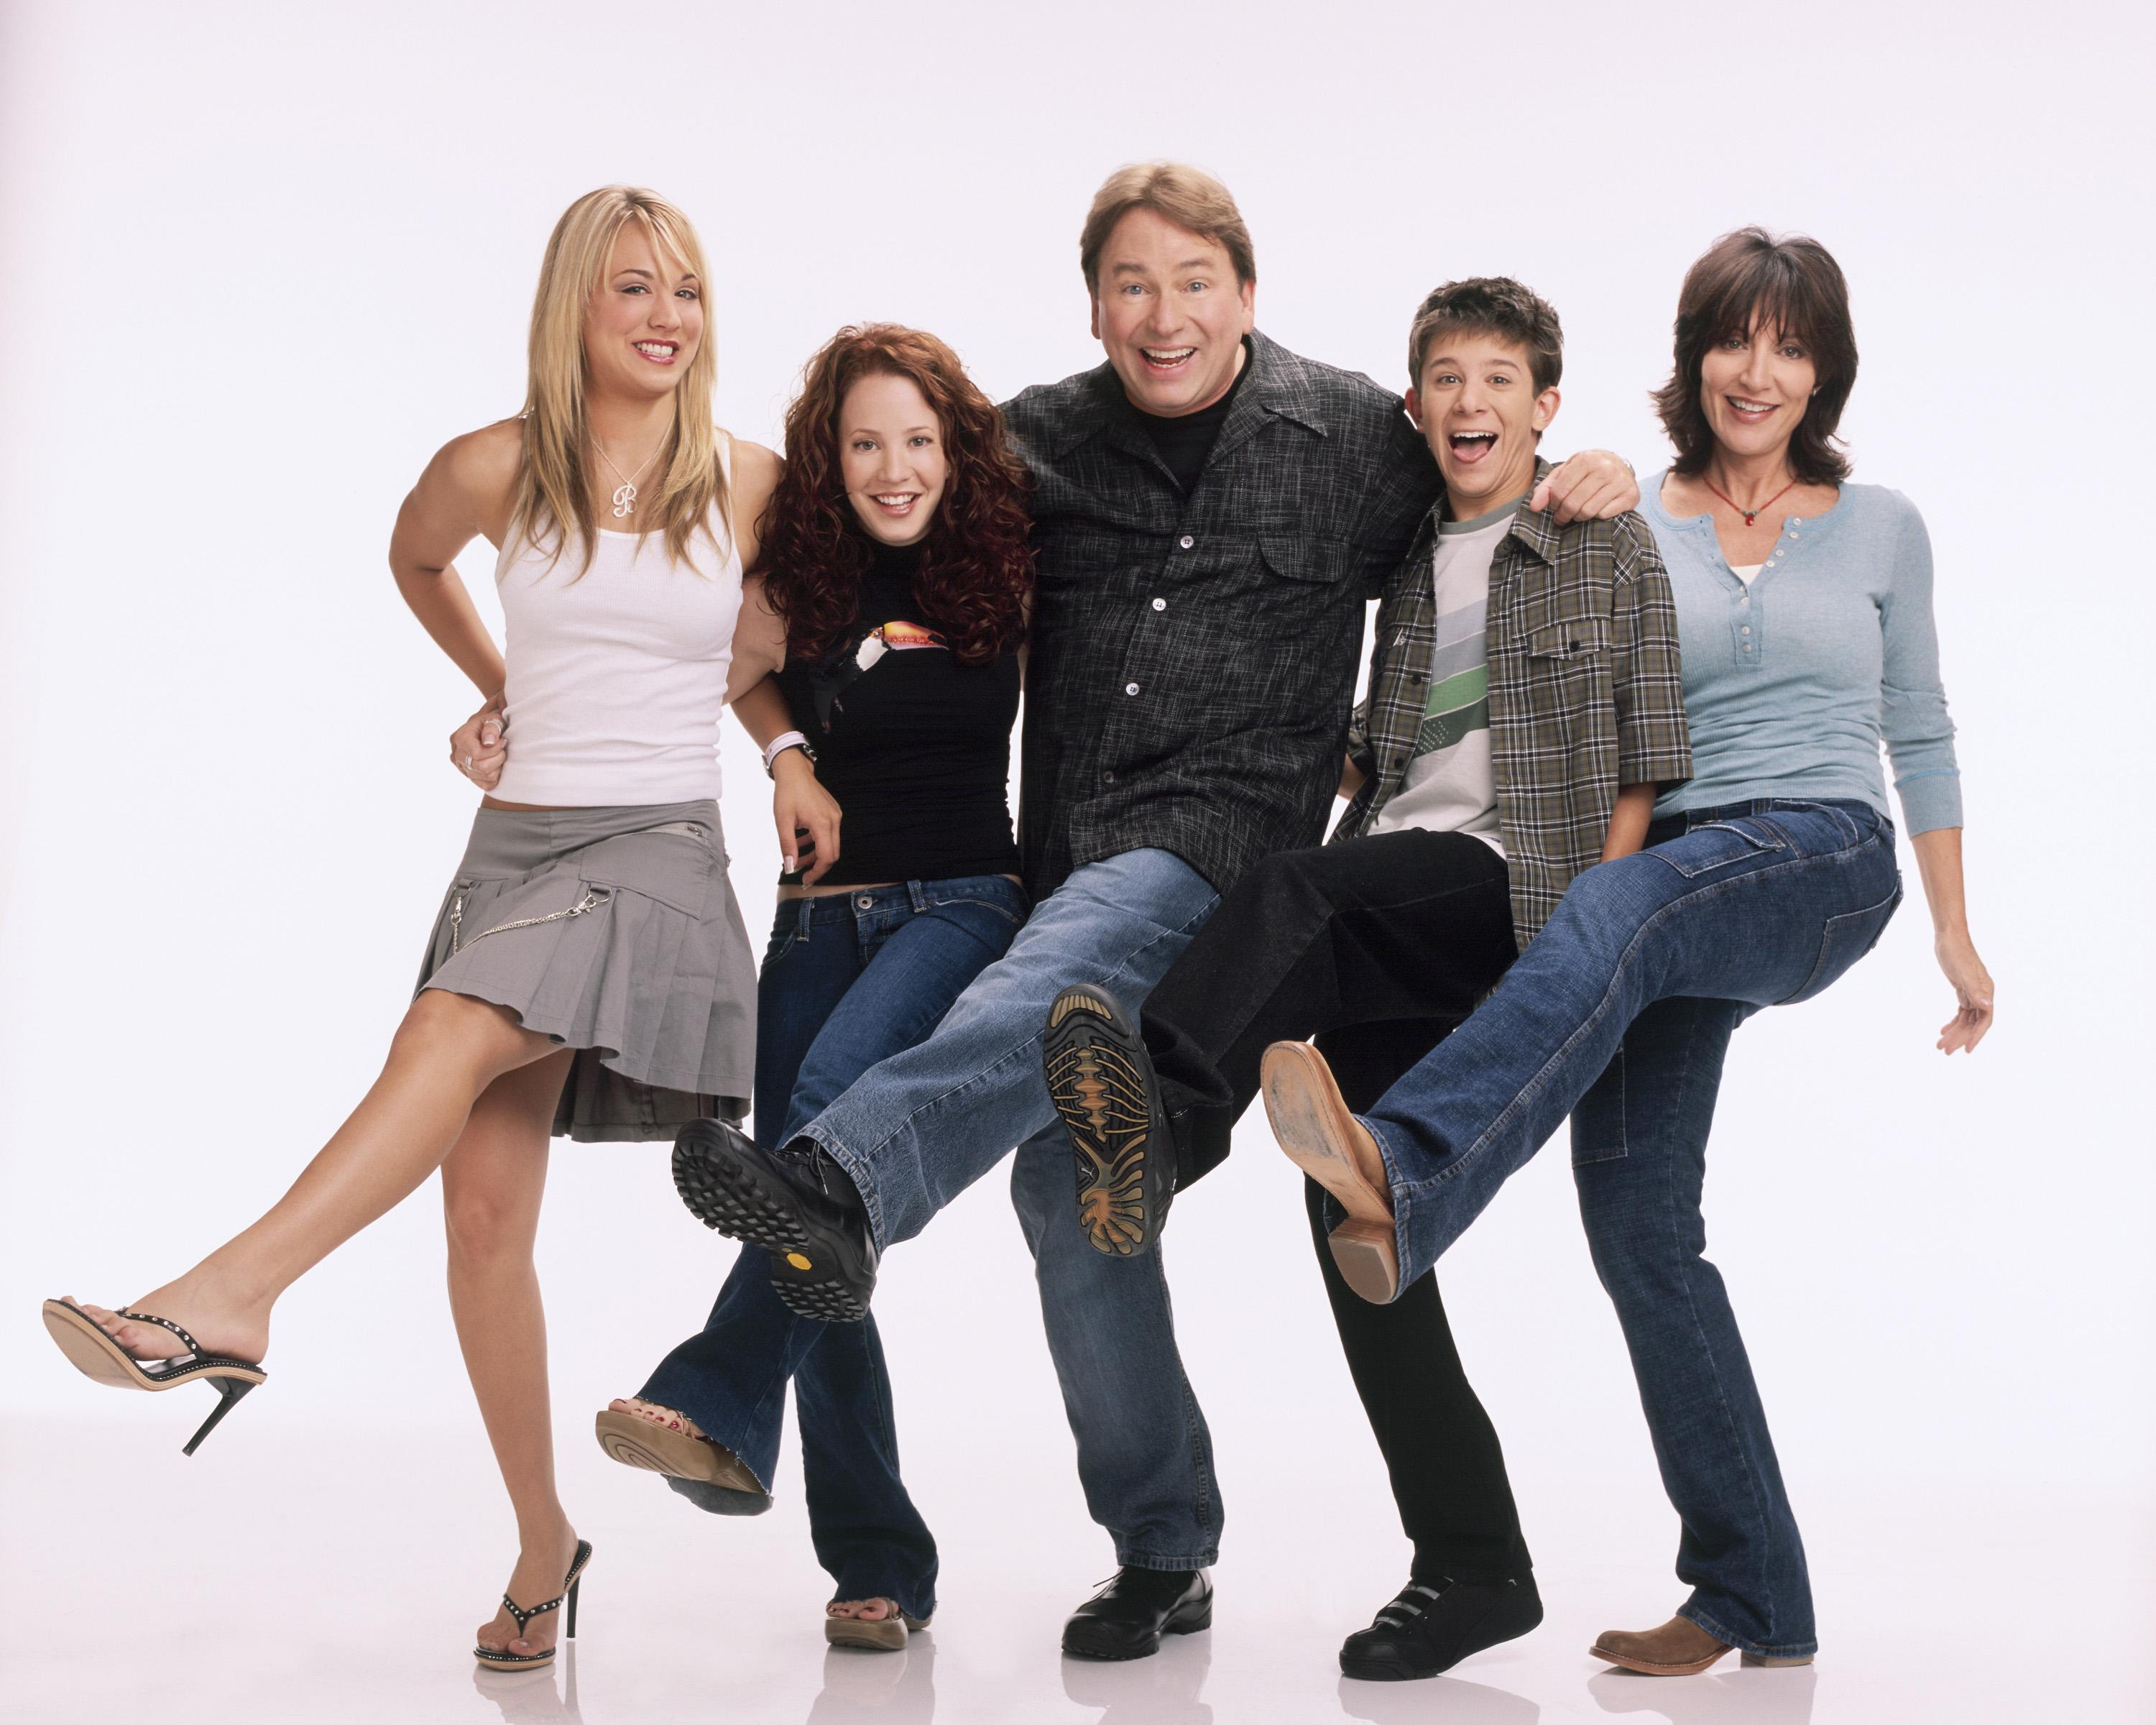 John ritter died 8 simple rules for dating